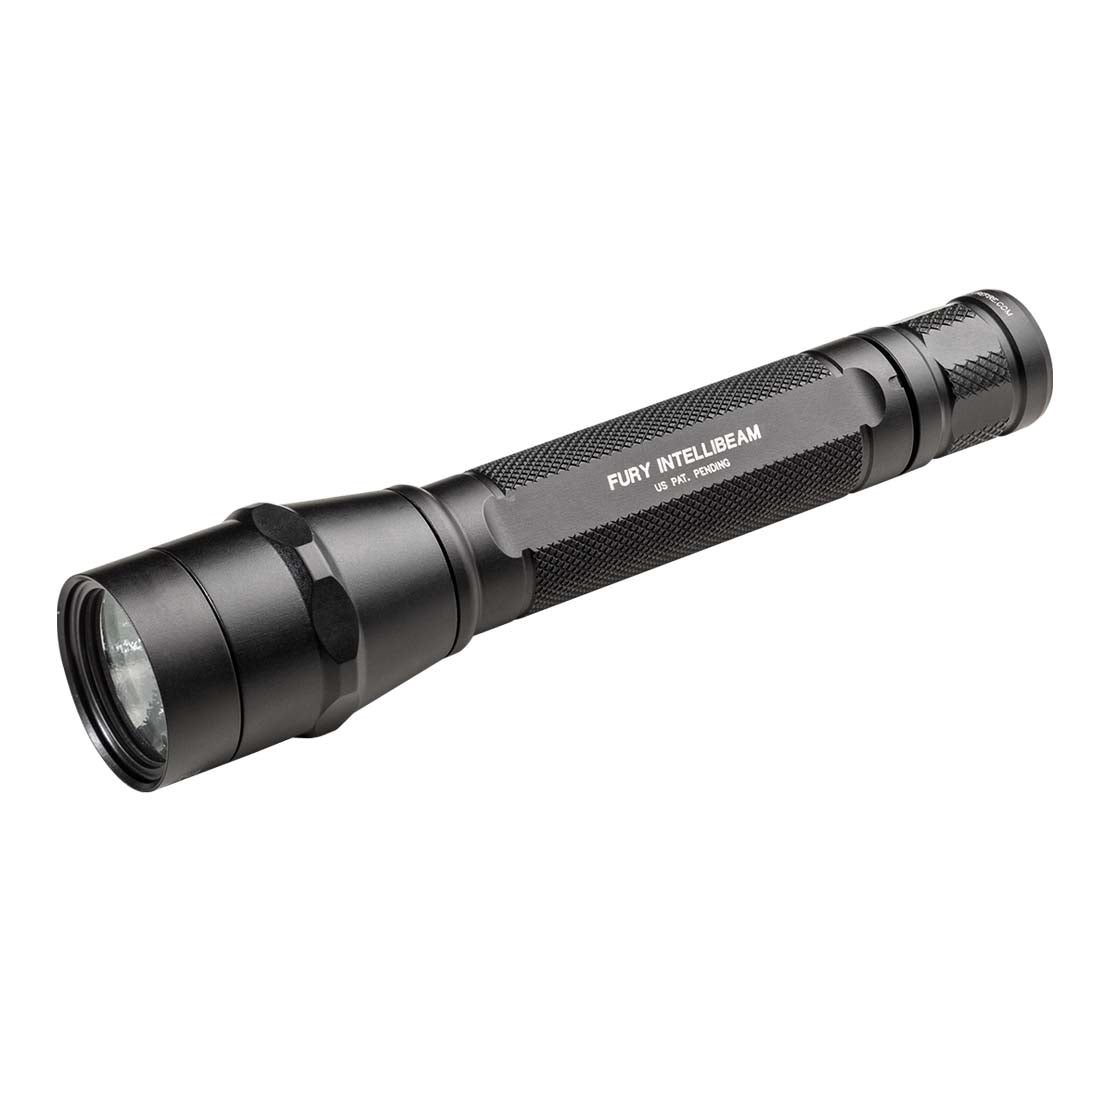 Surefire P3X Fury with IntelliBeam Technology Auto Adjusting Variable Output Led  Flashlight